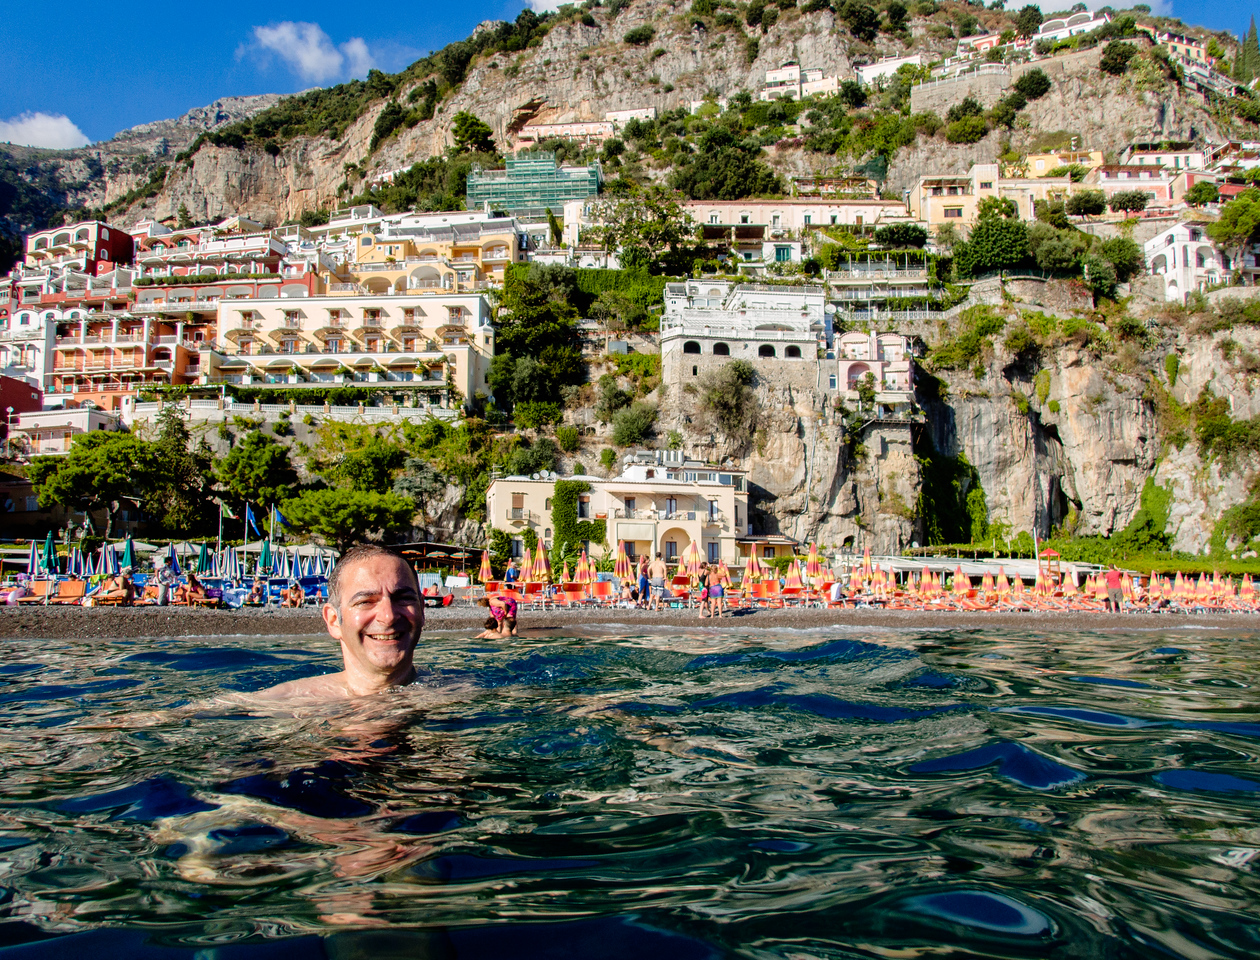 Rich swimming in Positano.